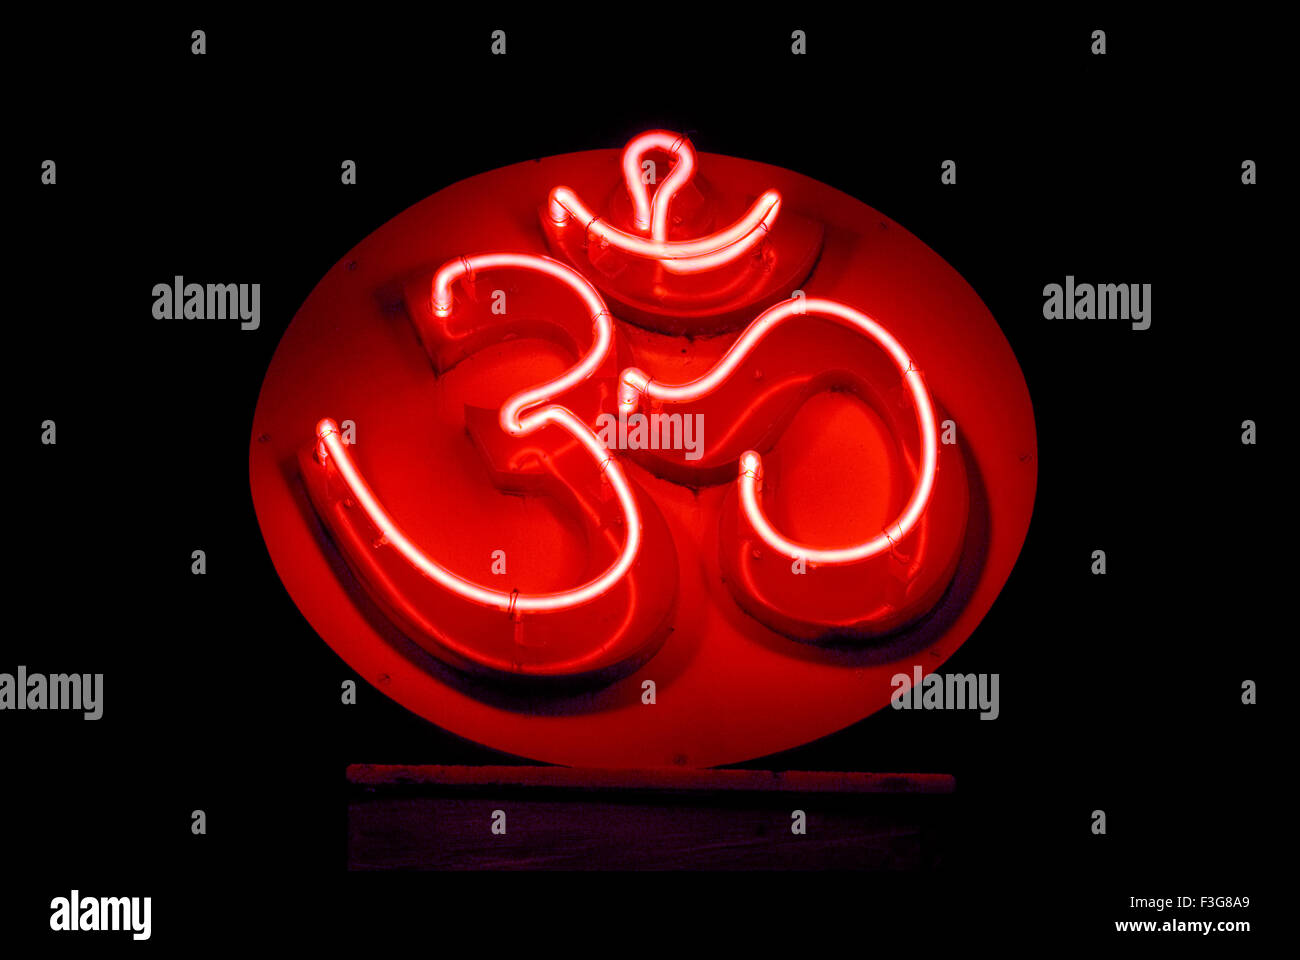 OM cosmic creation holy symbol of Hindu illuminated neon sign in red color - Stock Image